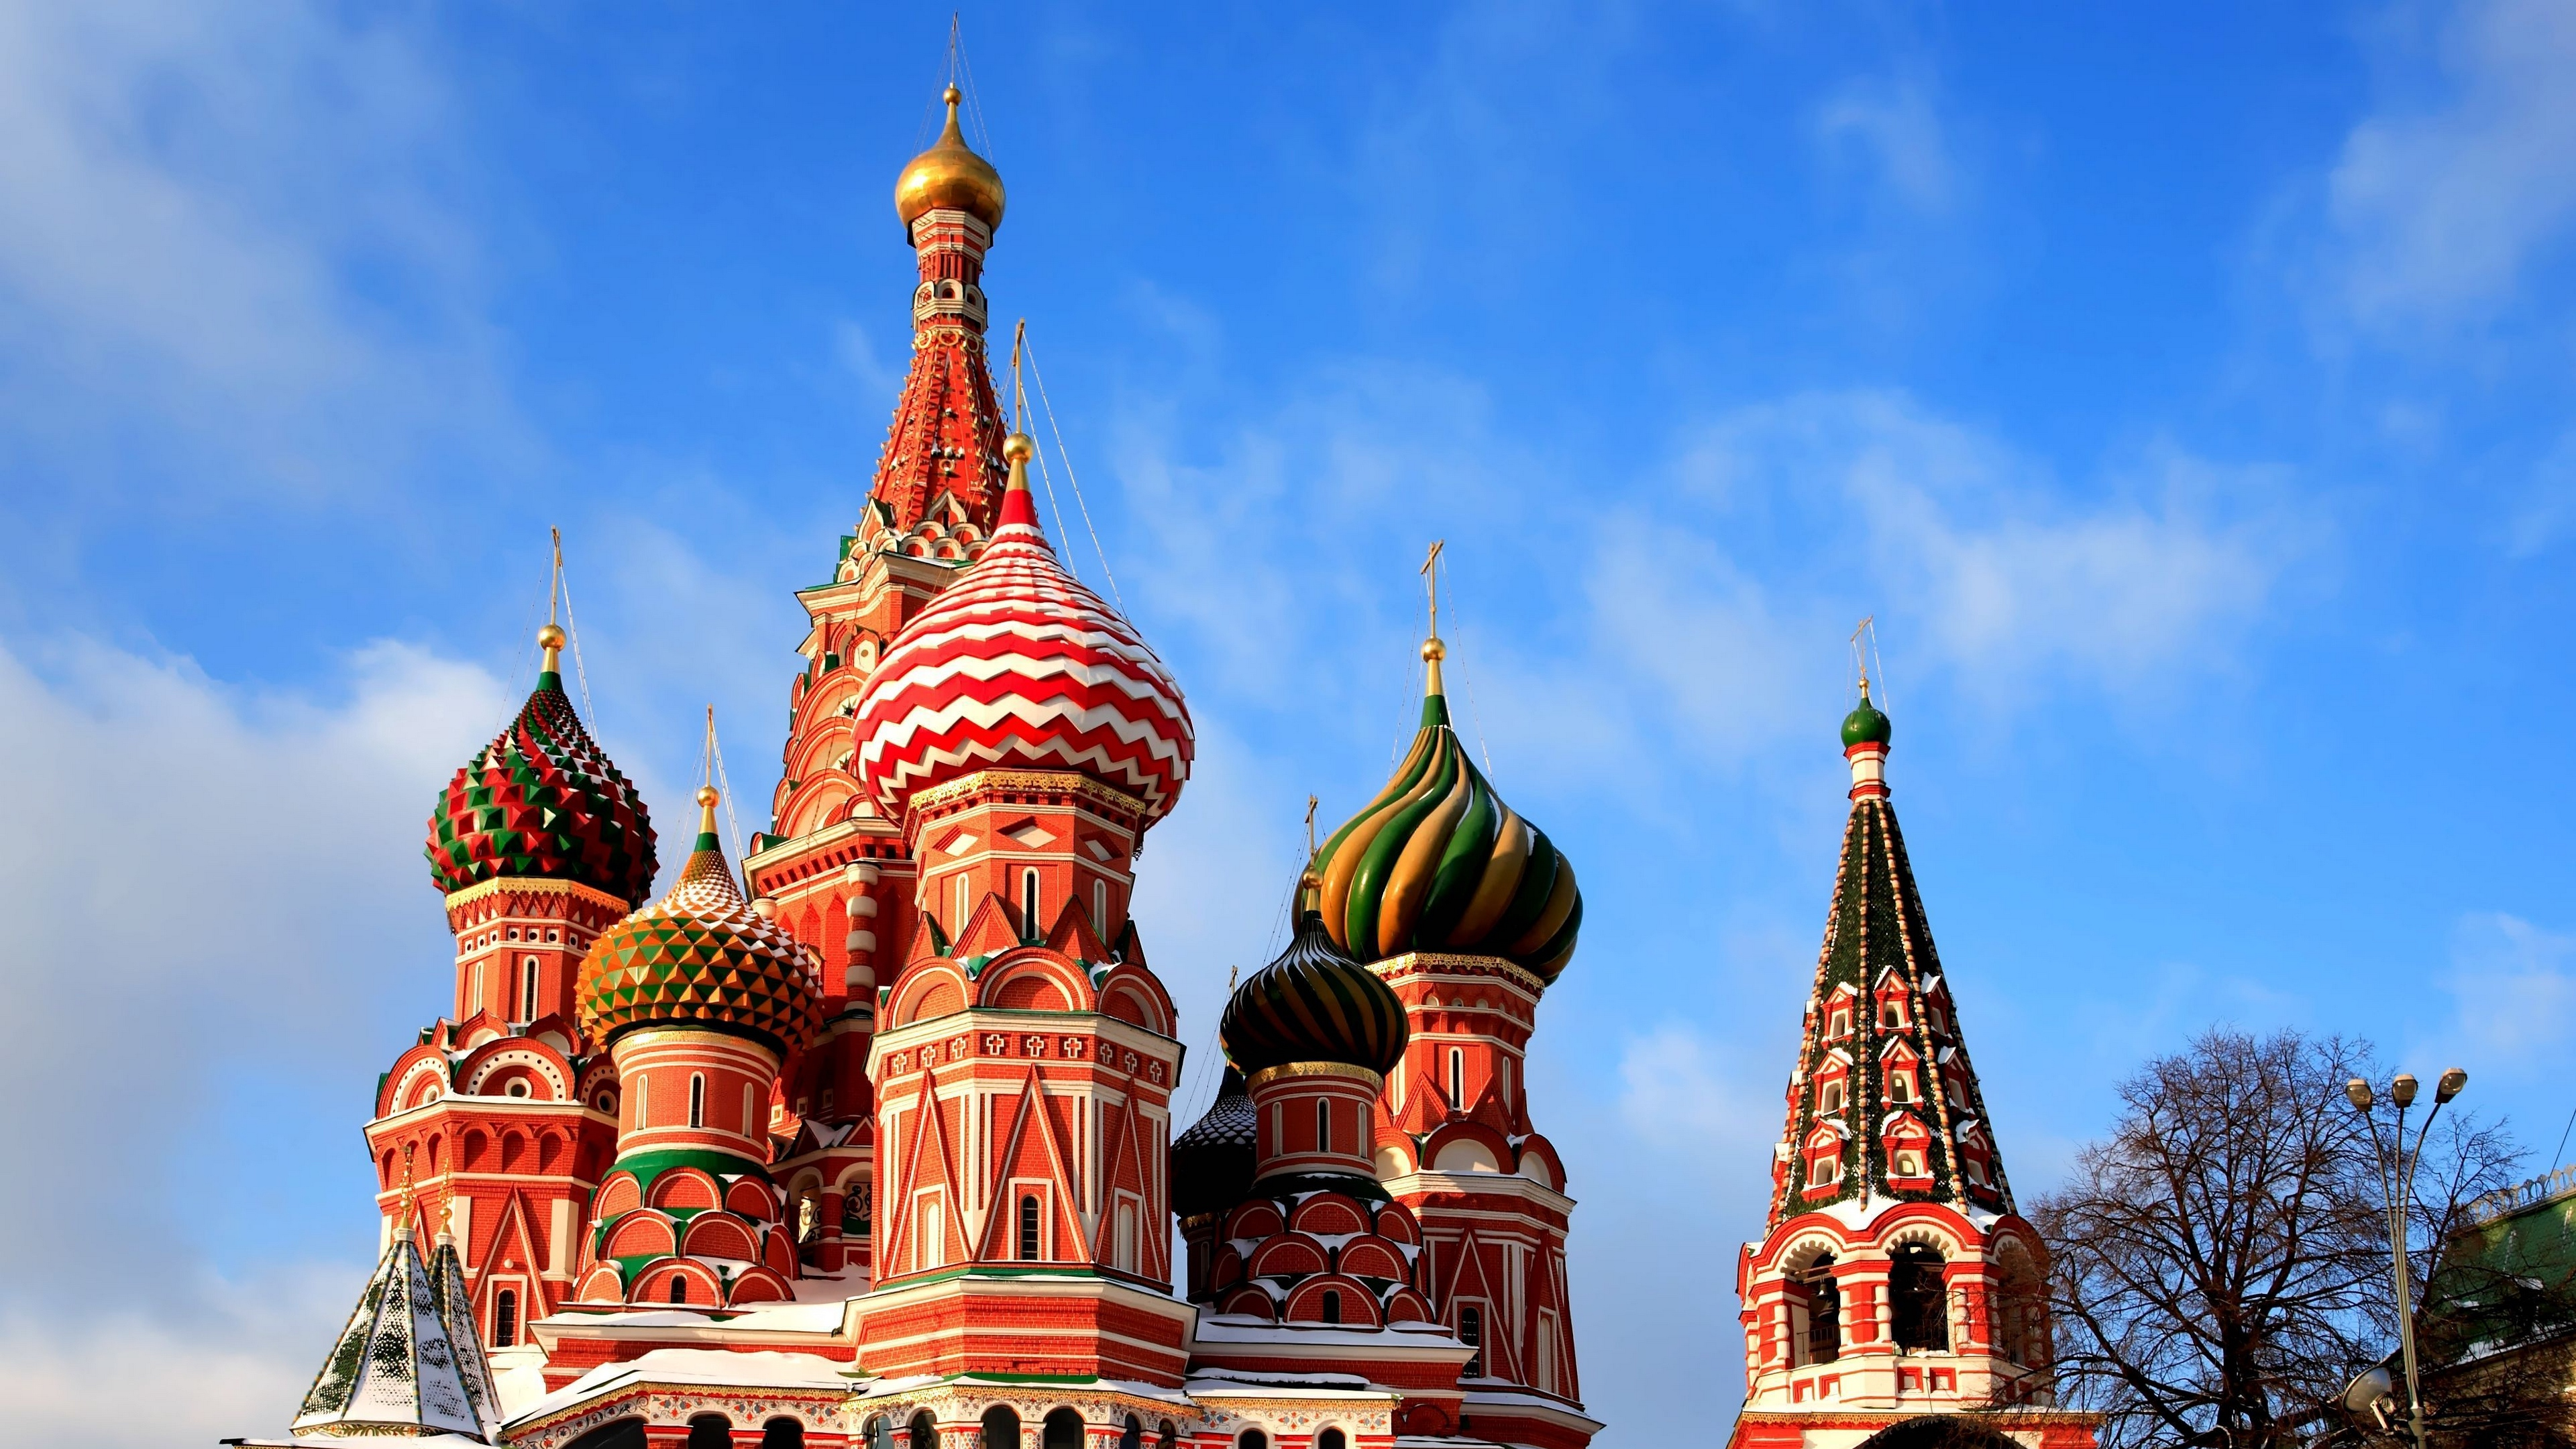 st basils cathedral red square moscow architecture dome 4k 1538067178 - st basils cathedral, red square, moscow, architecture, dome 4k - st basils cathedral, red square, Moscow